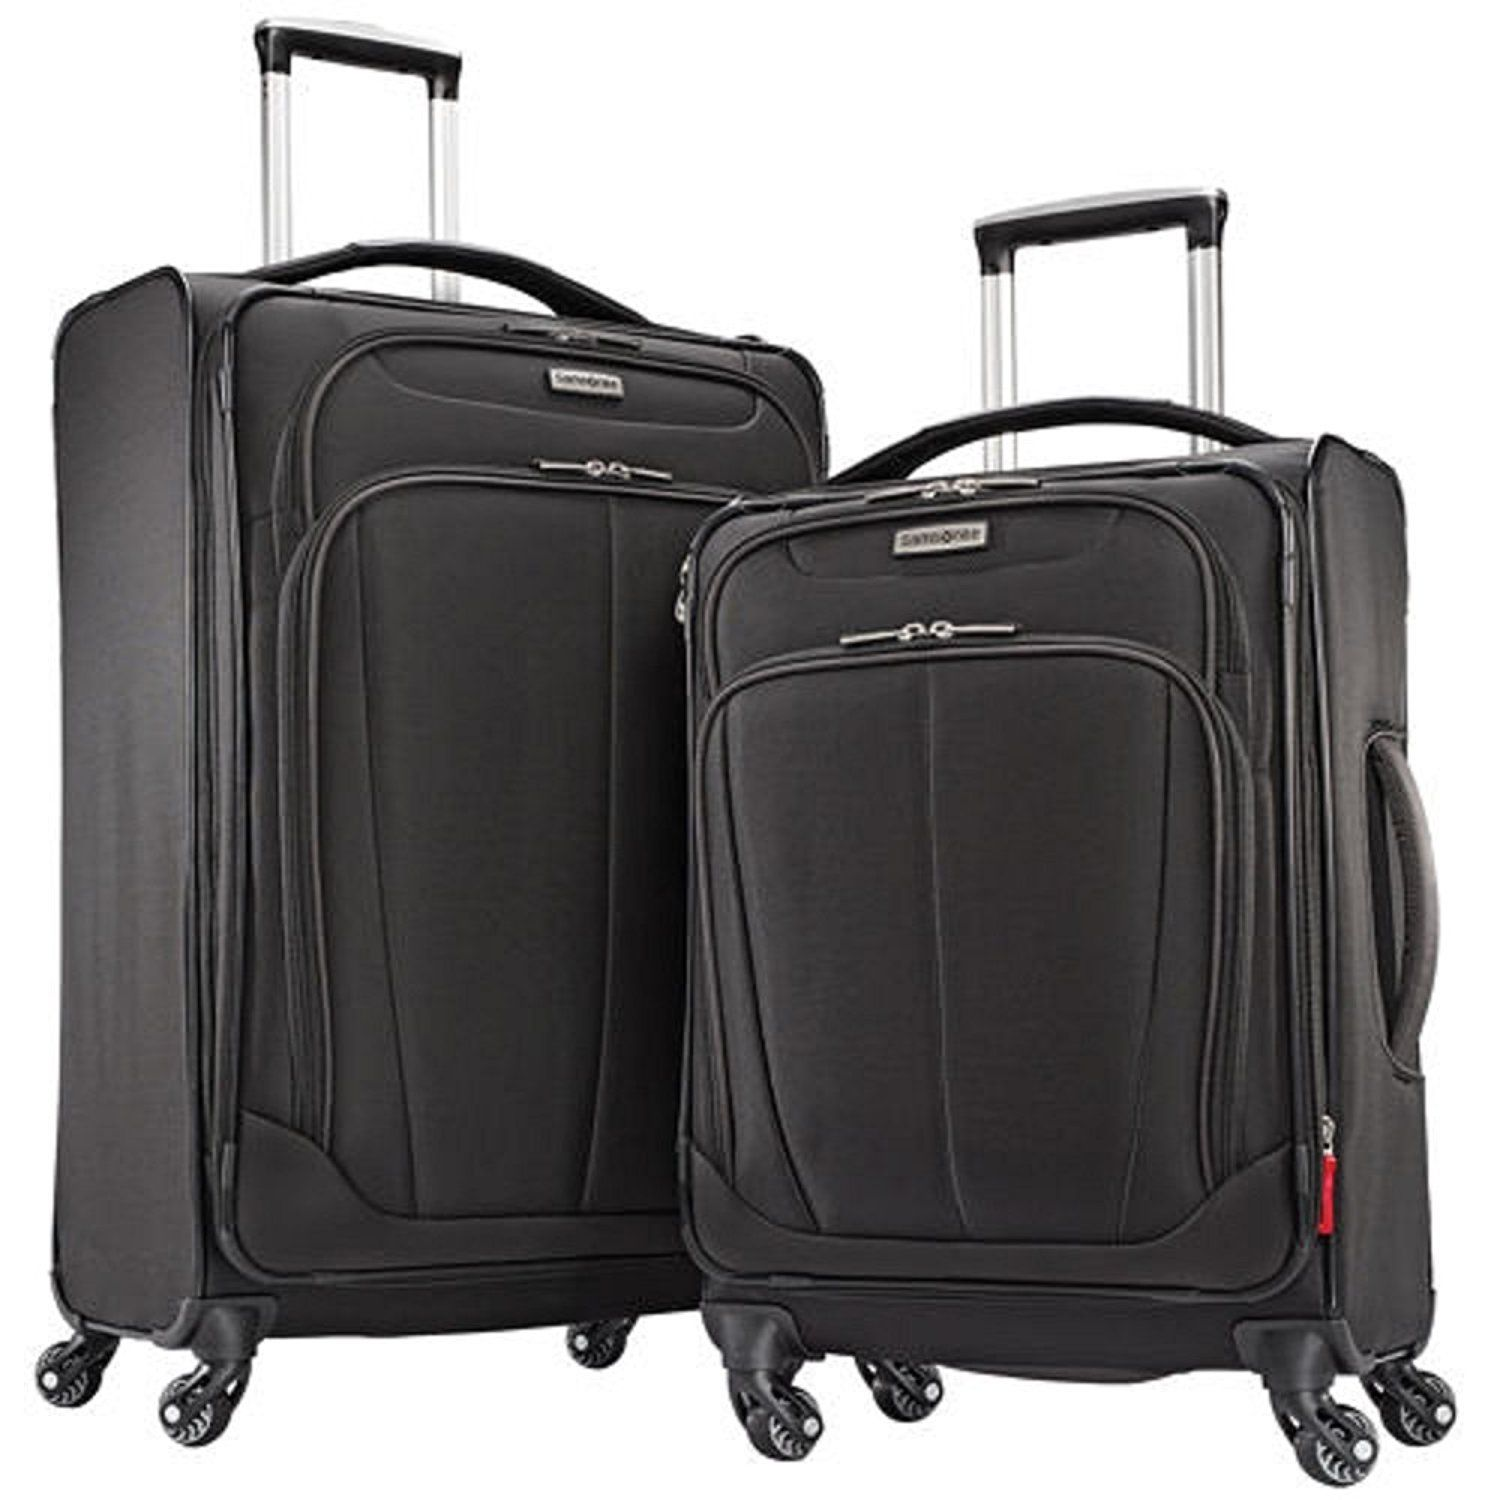 44a7d62f4ccf Samsonite Movelite Extreme 2 Piece Softside Set -- More info could be found  at the image url. (This is an affiliate link)  TravelLuggage